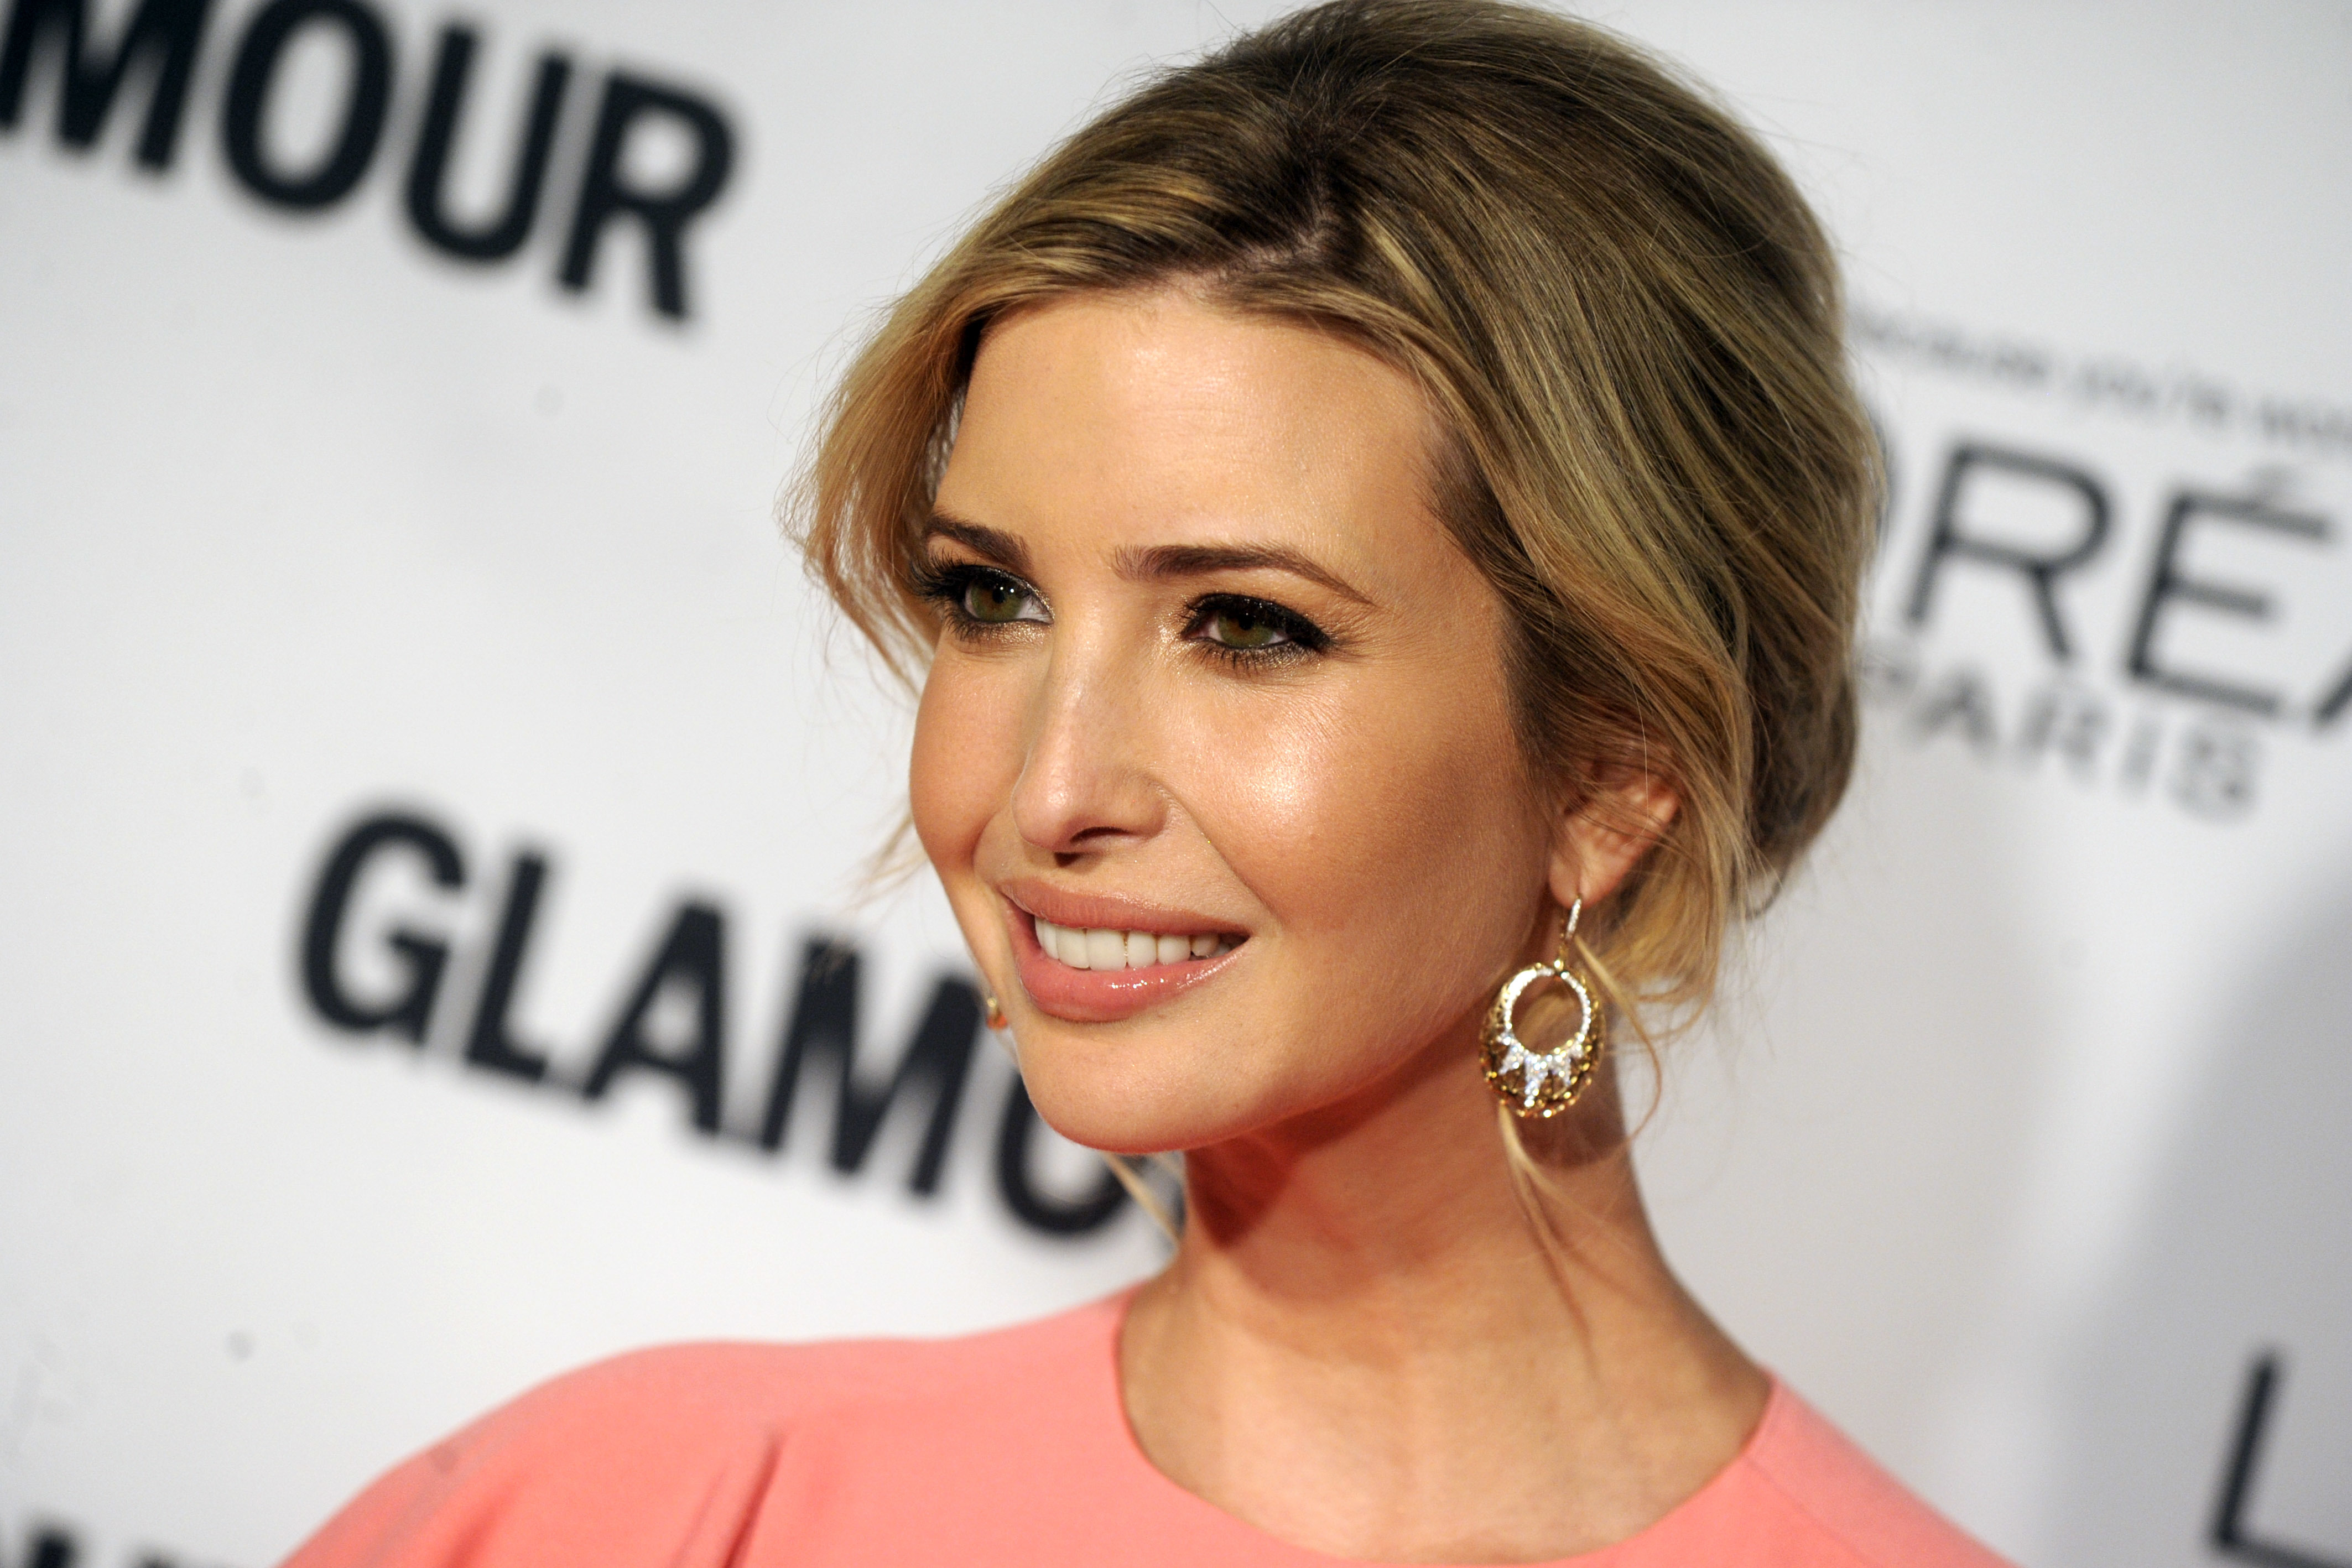 Glamour's 25th Anniversary Women of the Year Awards in New York Featuring: Ivanka Trump Where: New York, New York, United States When: 09 Nov 2015 Credit: Dennis Van Tine/Future Image/WENN.com **Not available for publication in Germany, Poland, Russia, Hungary, Slovenia, Czech Republic, Serbia, Croatia, Slovakia**